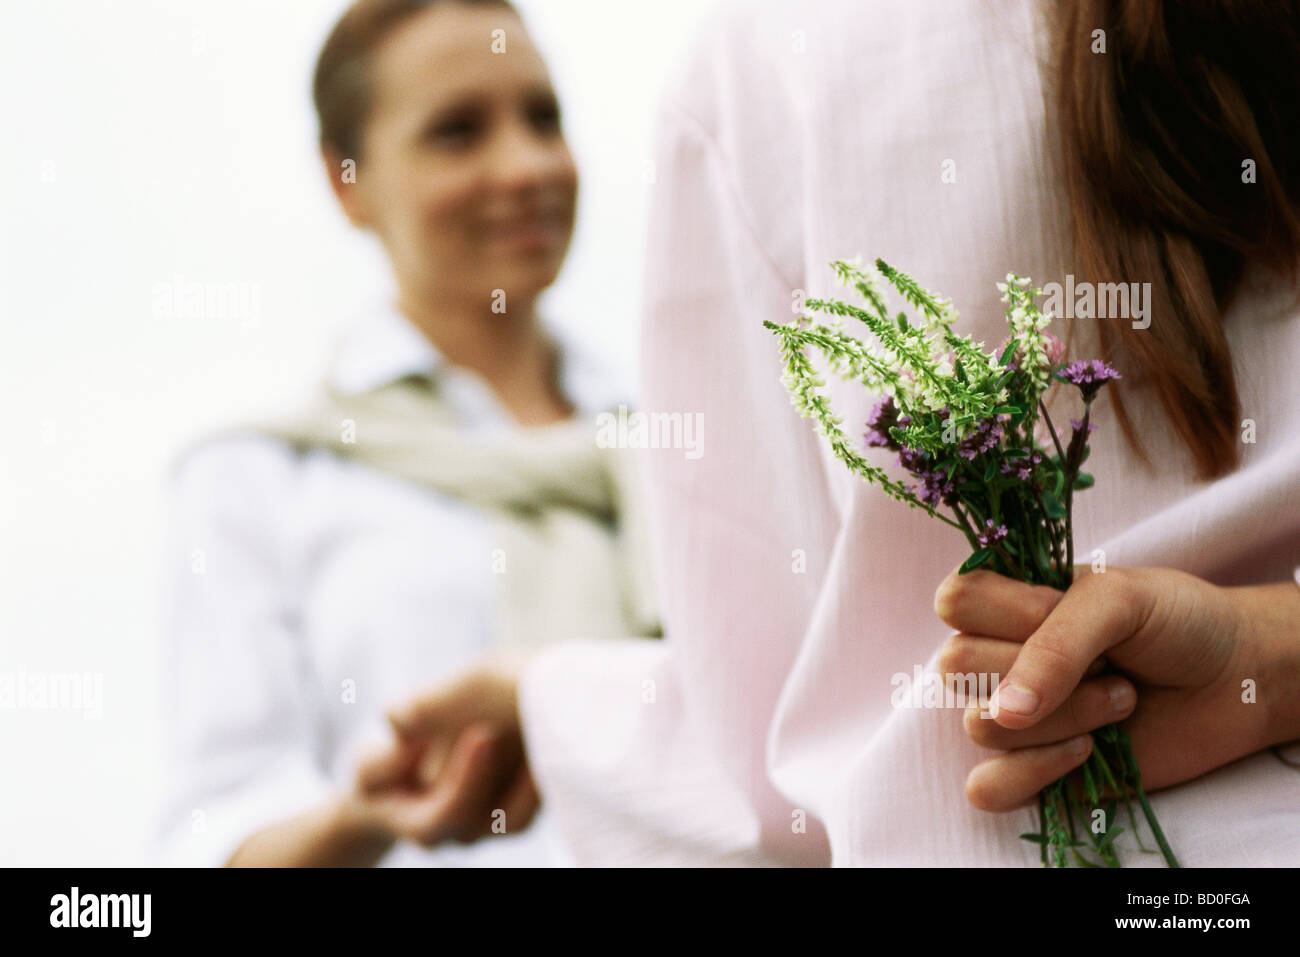 Girl hiding wildflower bouquet behind back, holding mother's hand, cropped - Stock Image